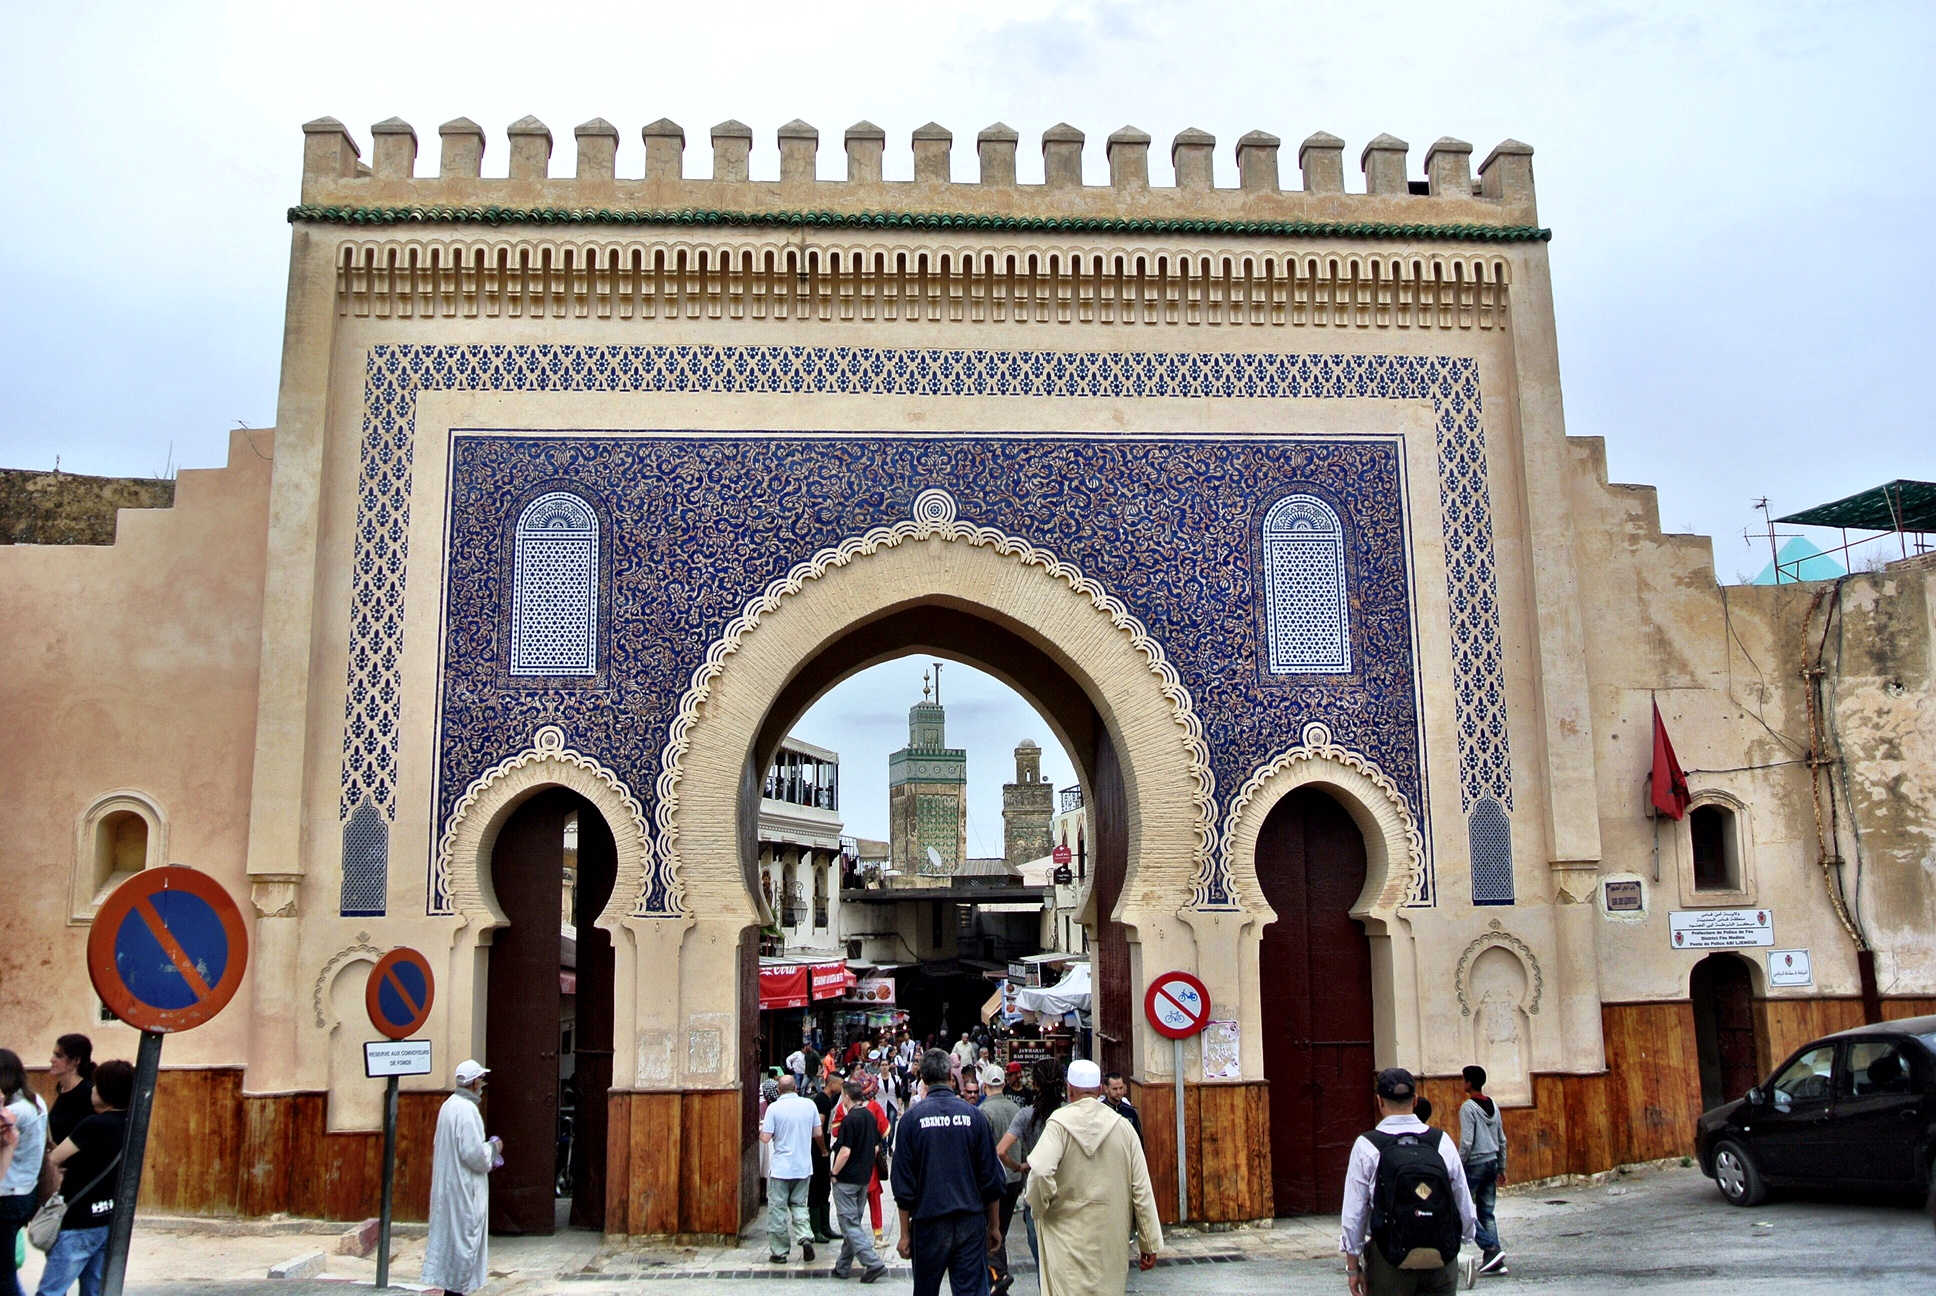 Bab Bou Jeloud, better known as the Blue Gate — the entrance to the bustling medina of Fès